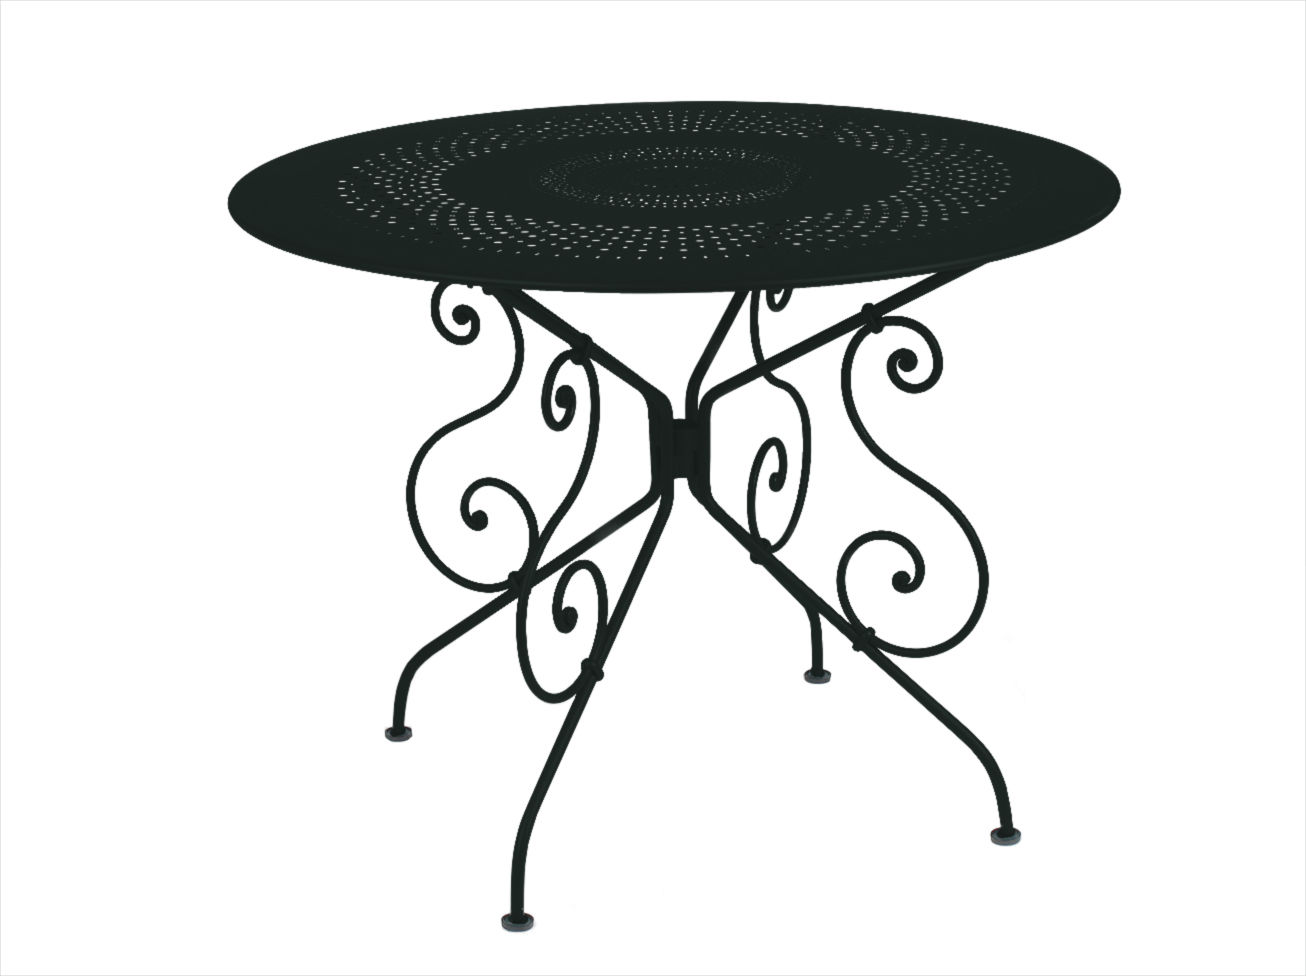 Outdoor - Garden Tables - 1900 Round table - Ø 96 cm by Fermob - Liquorice - Steel